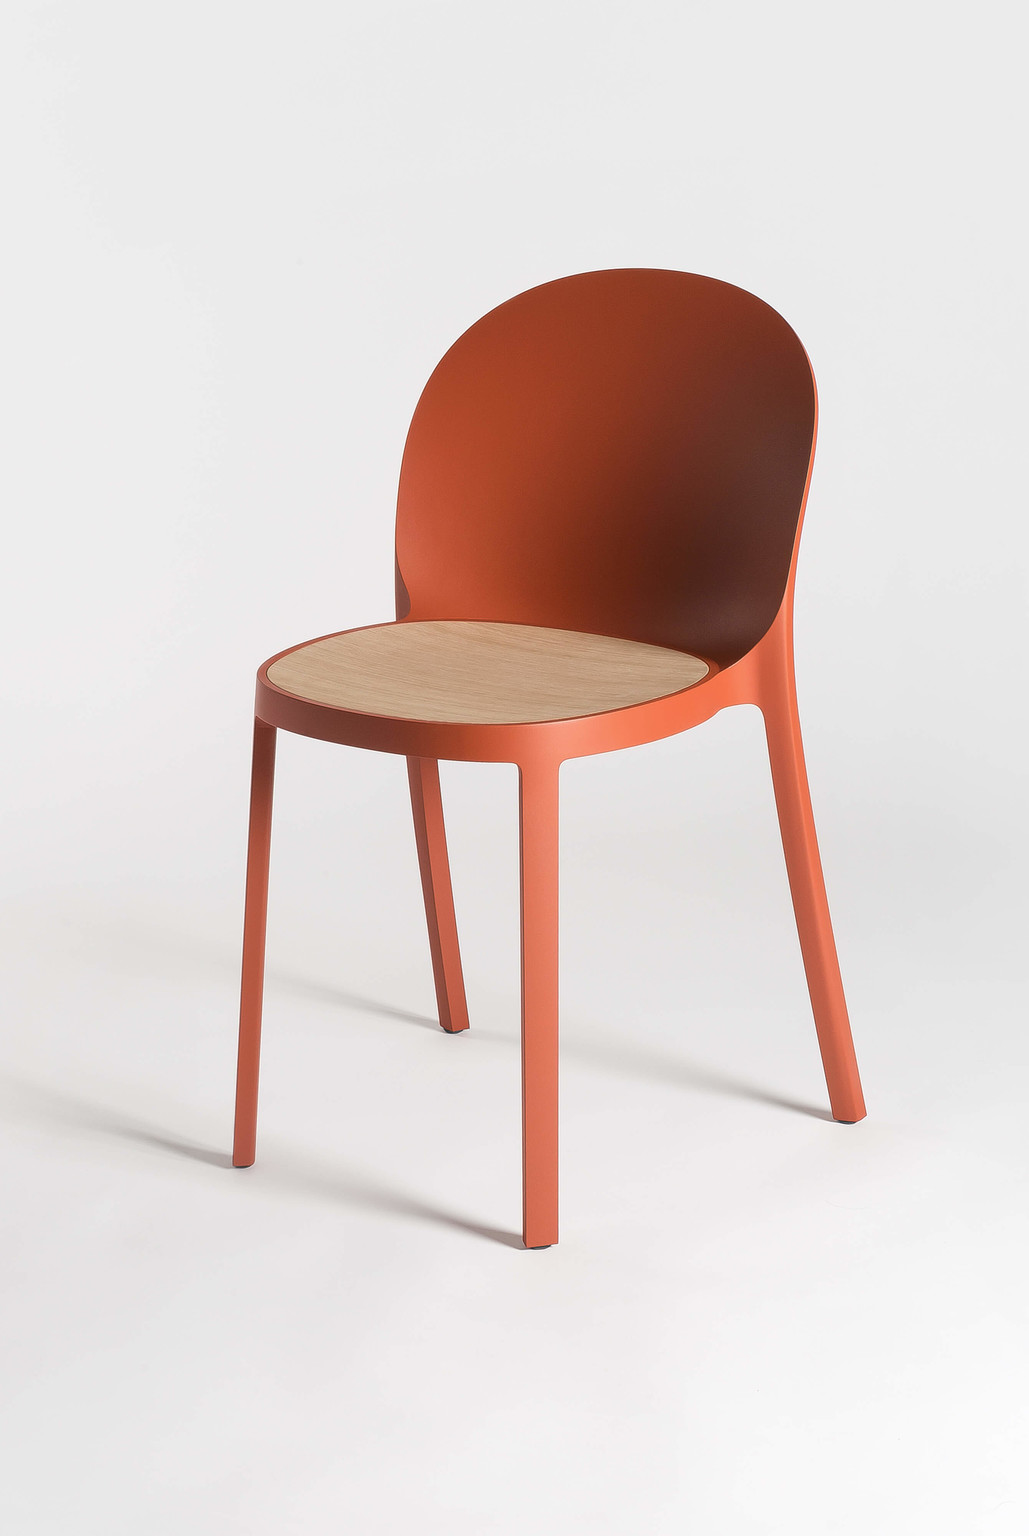 """Midi"" chair - © Photo: Filipe Viricel, Swiss Design Awards Blog"